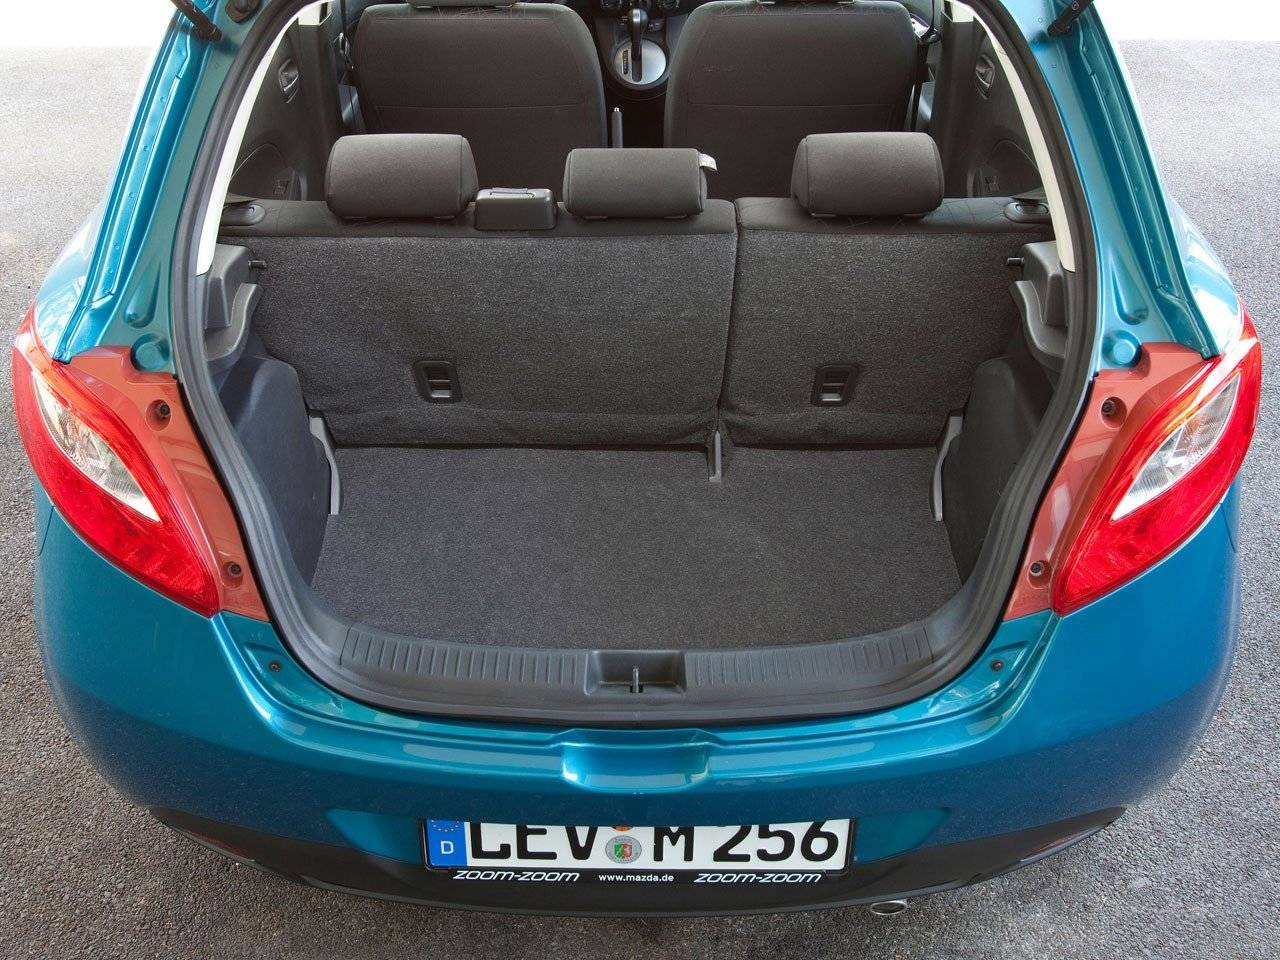 test mazda2 autotests. Black Bedroom Furniture Sets. Home Design Ideas